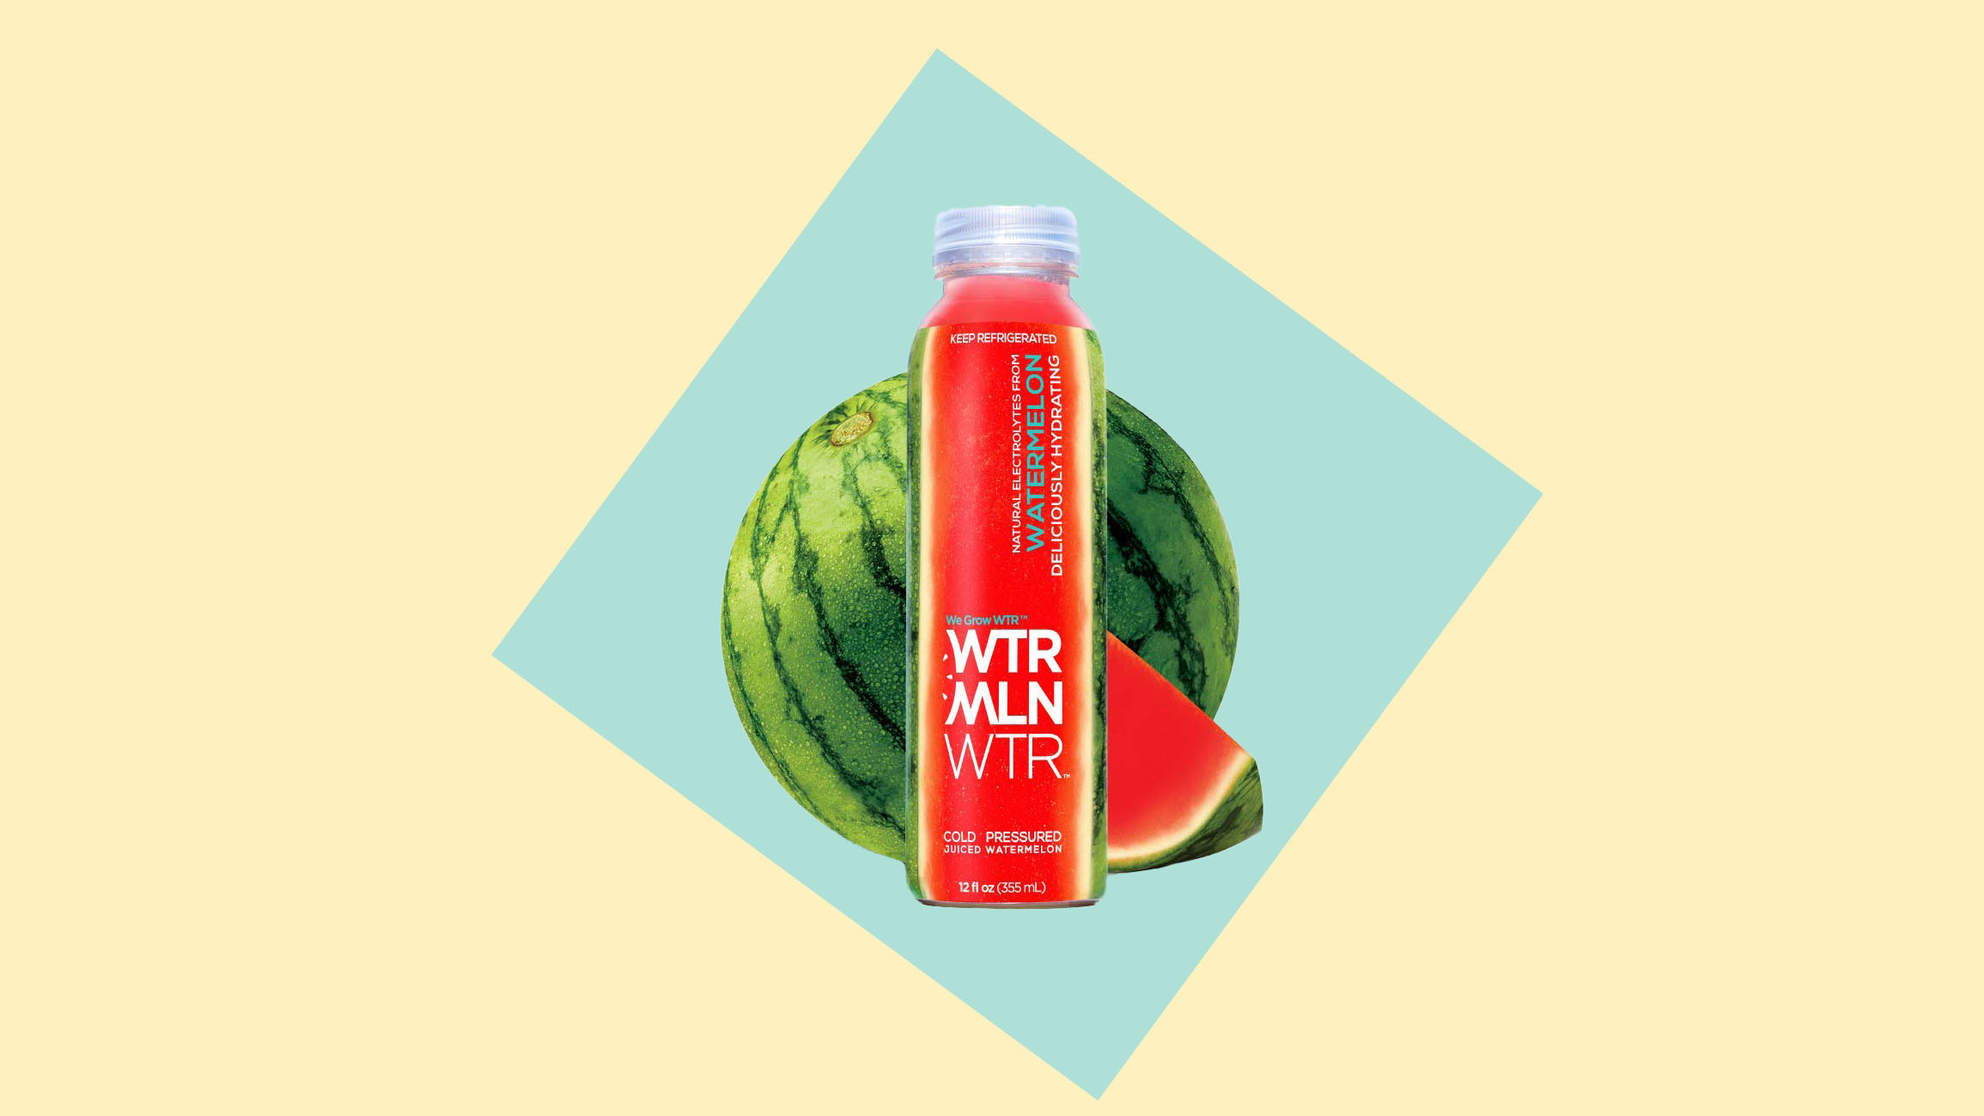 wtrmln-wtr watermelon-water health drink hydration electrolytes woman health wellbeing